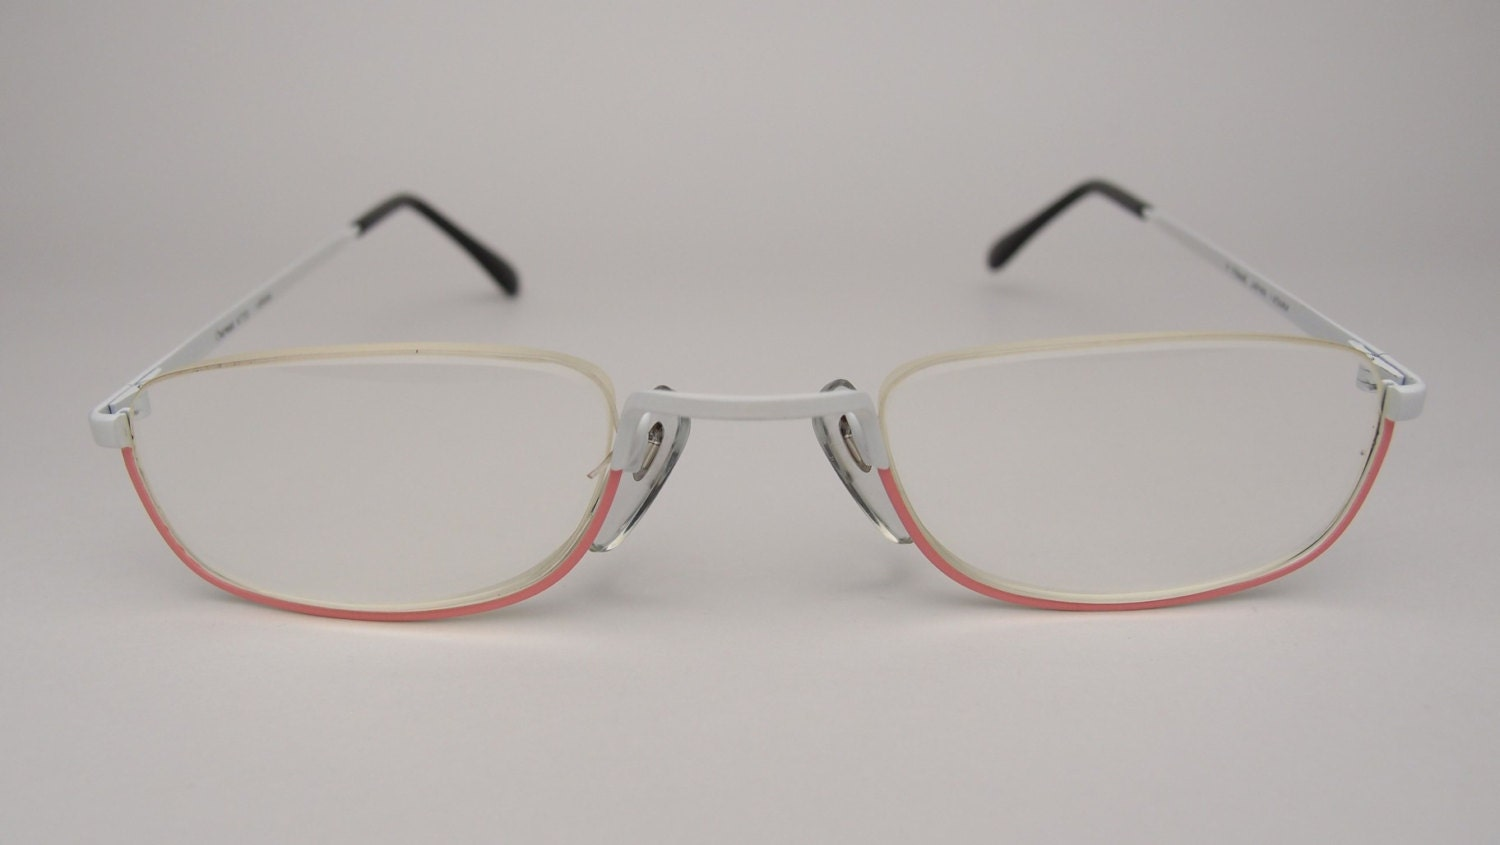 Rimless Eyeglass Frames With Cable Temples : pink eyeglass frames on Etsy, a global handmade and ...